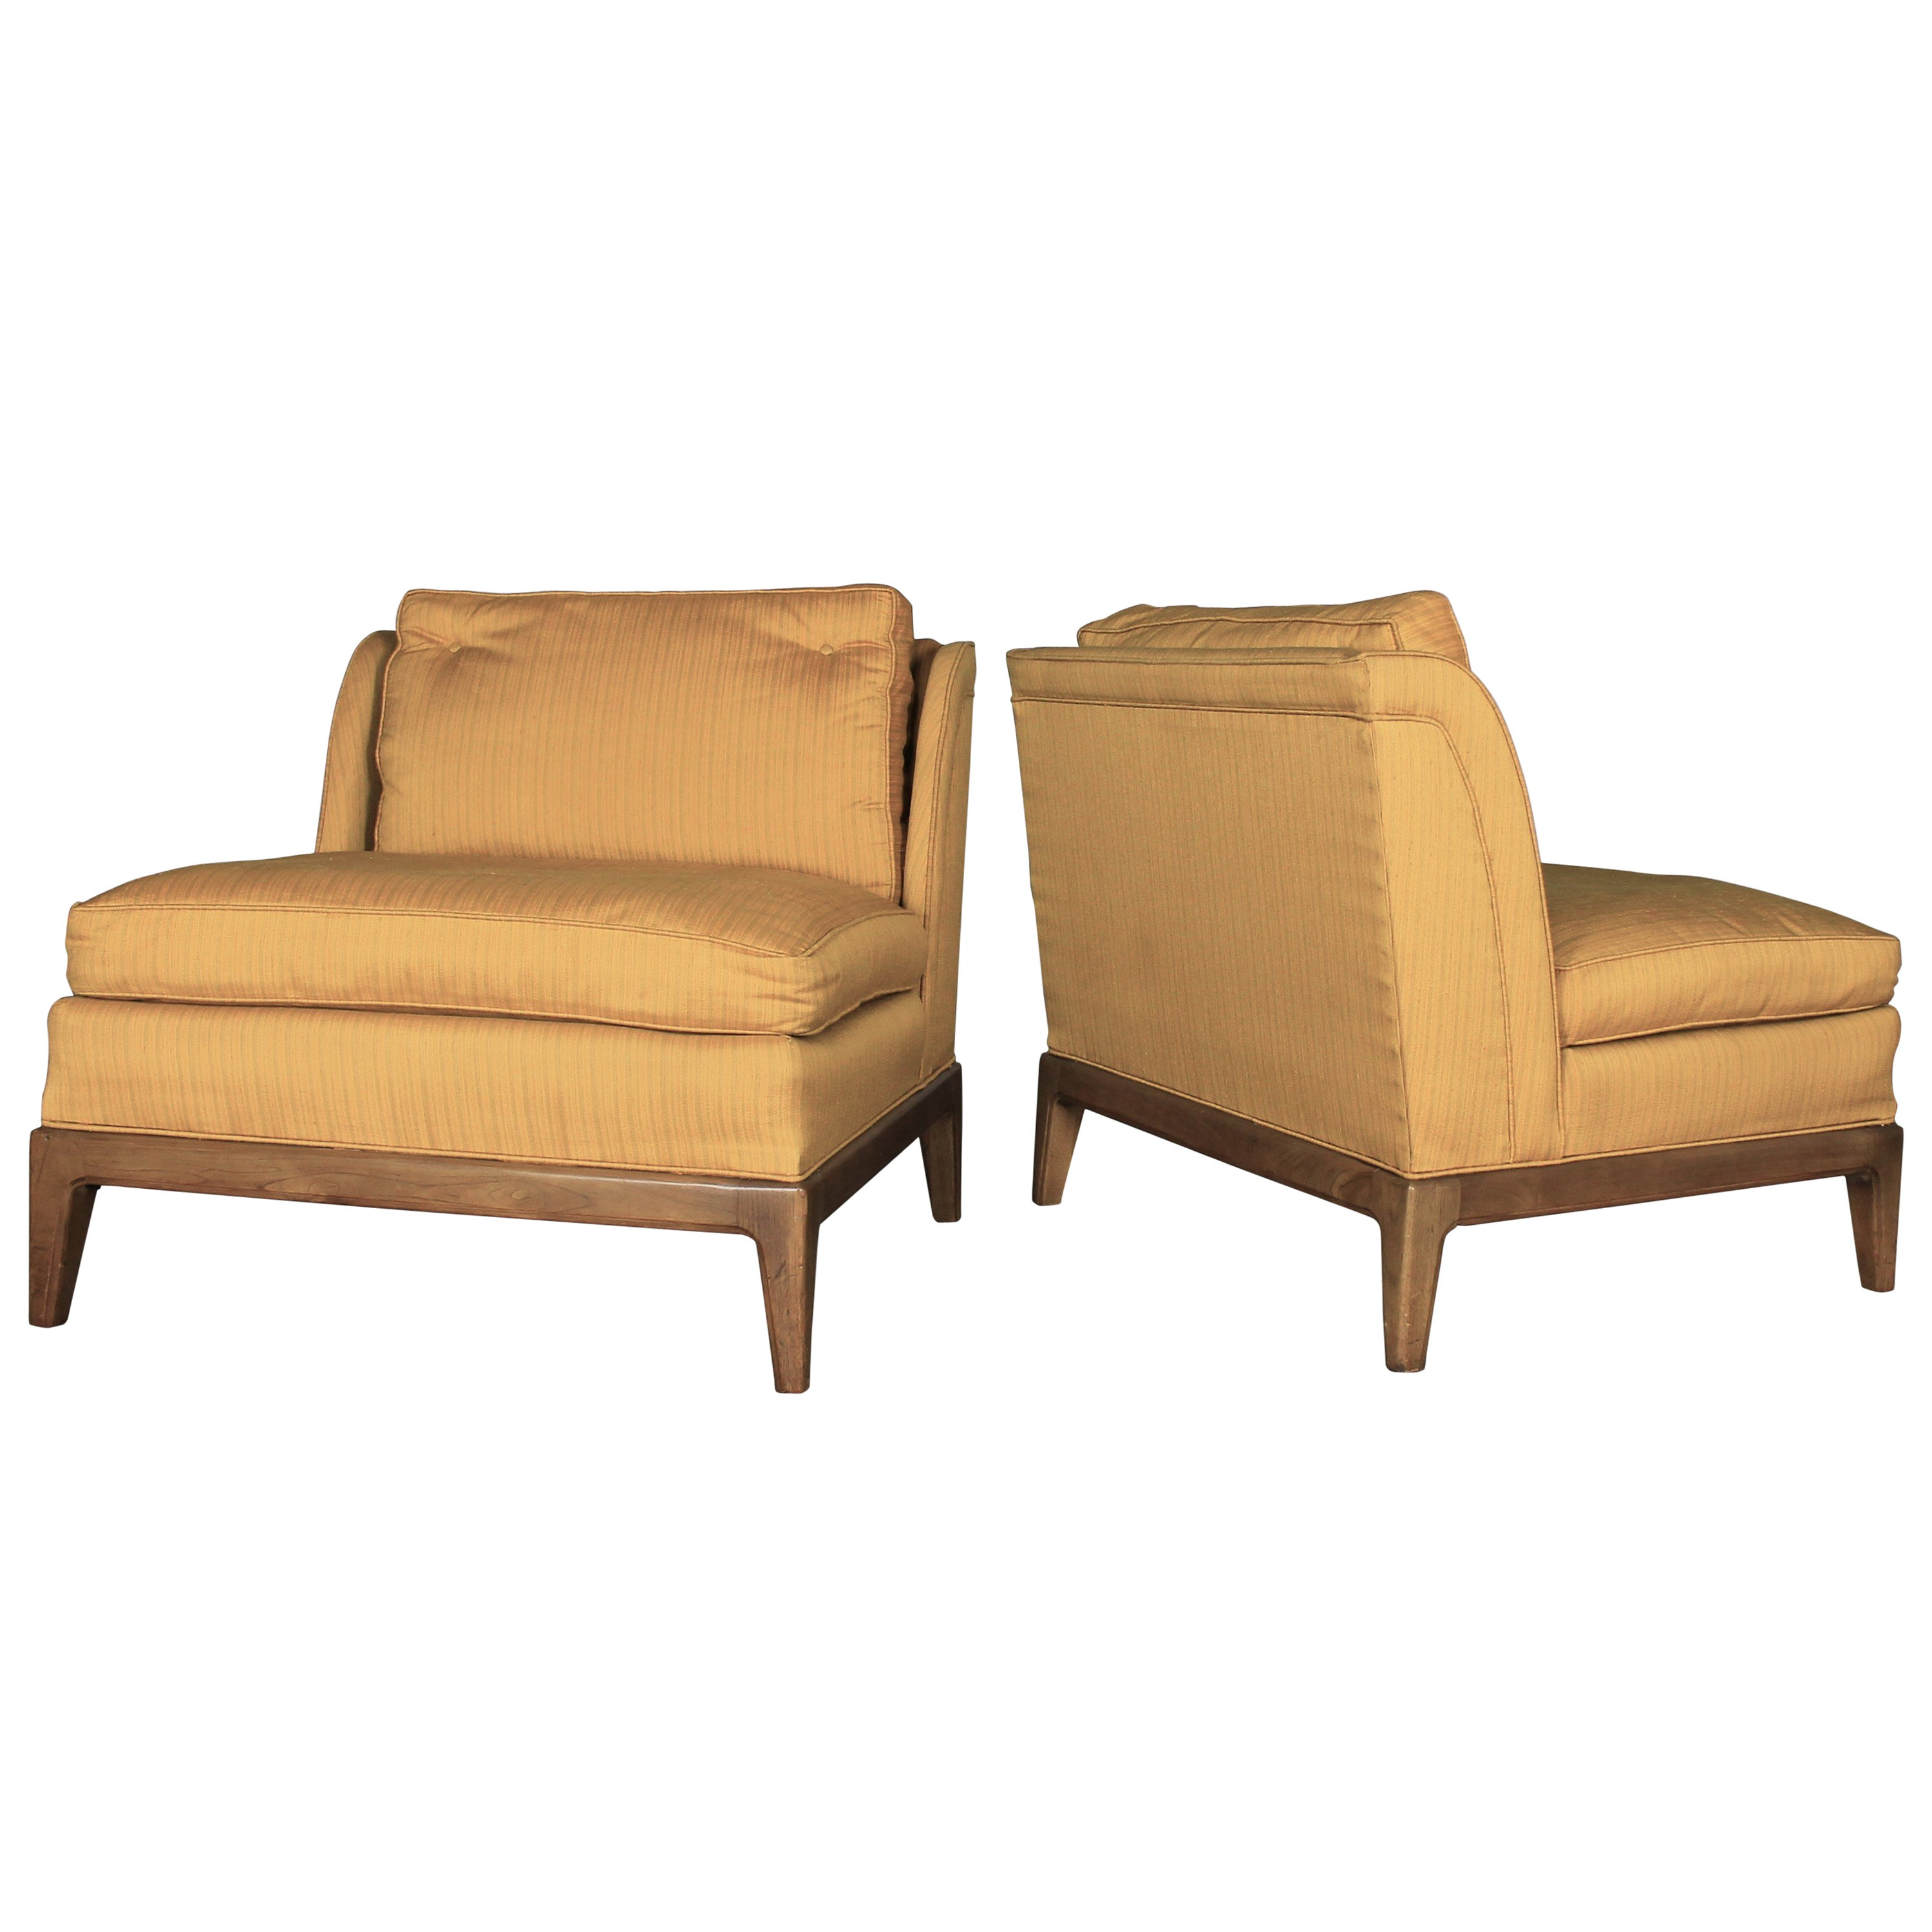 Sears Accent Chairs Gold Slipper Chairs Drexel For Sears Symphony Vintage Mid Century Modern Pair